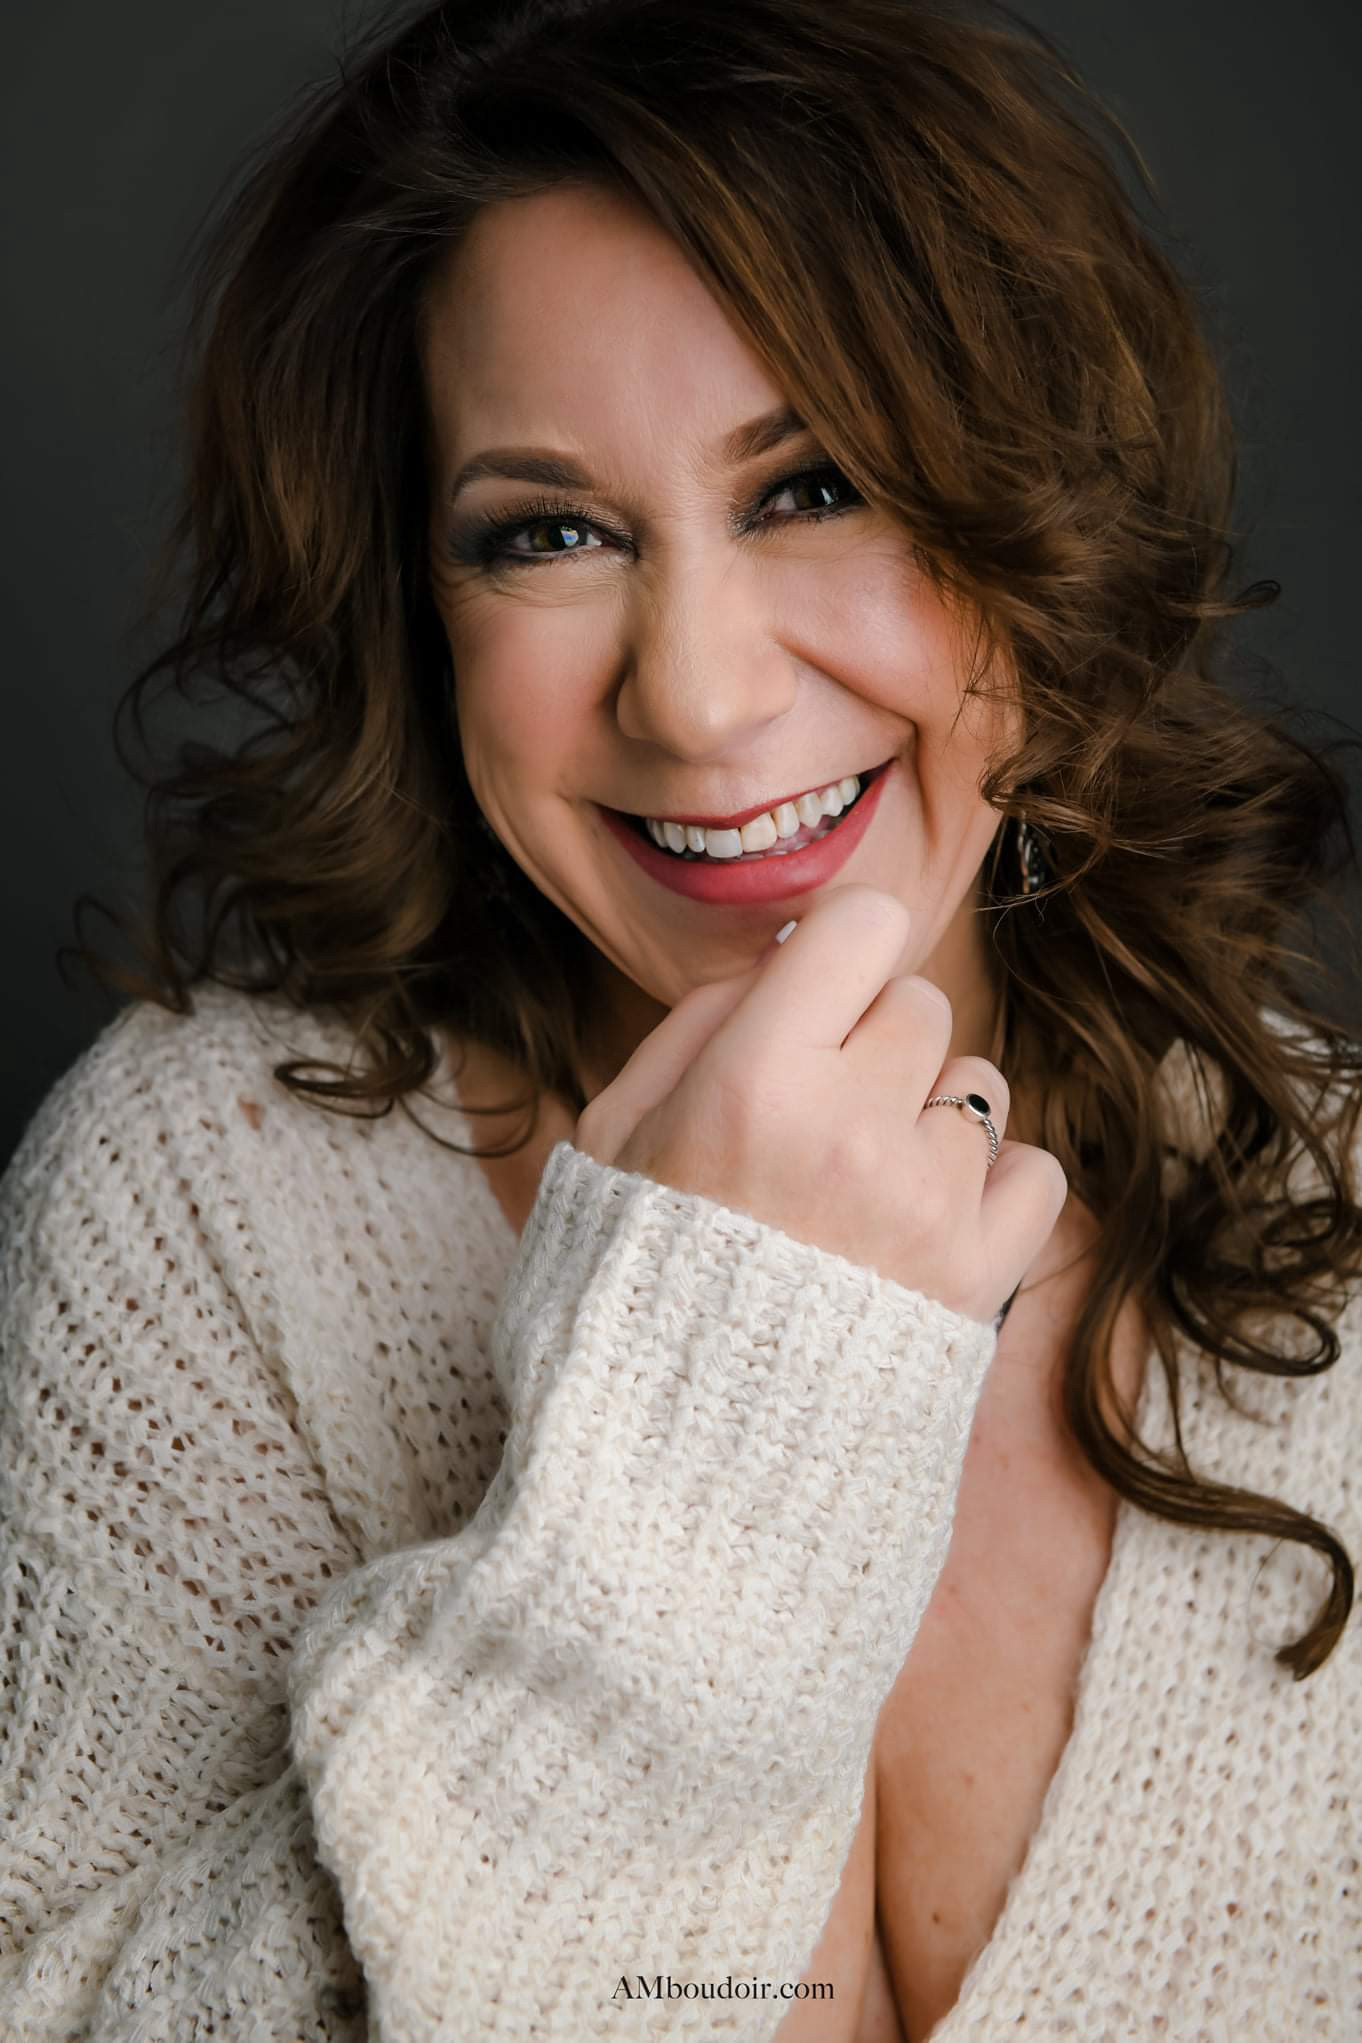 White woman smiling with beige sweater hand at her mouth brown hair curly mauve lipstick and dark eye shadow with brown eye